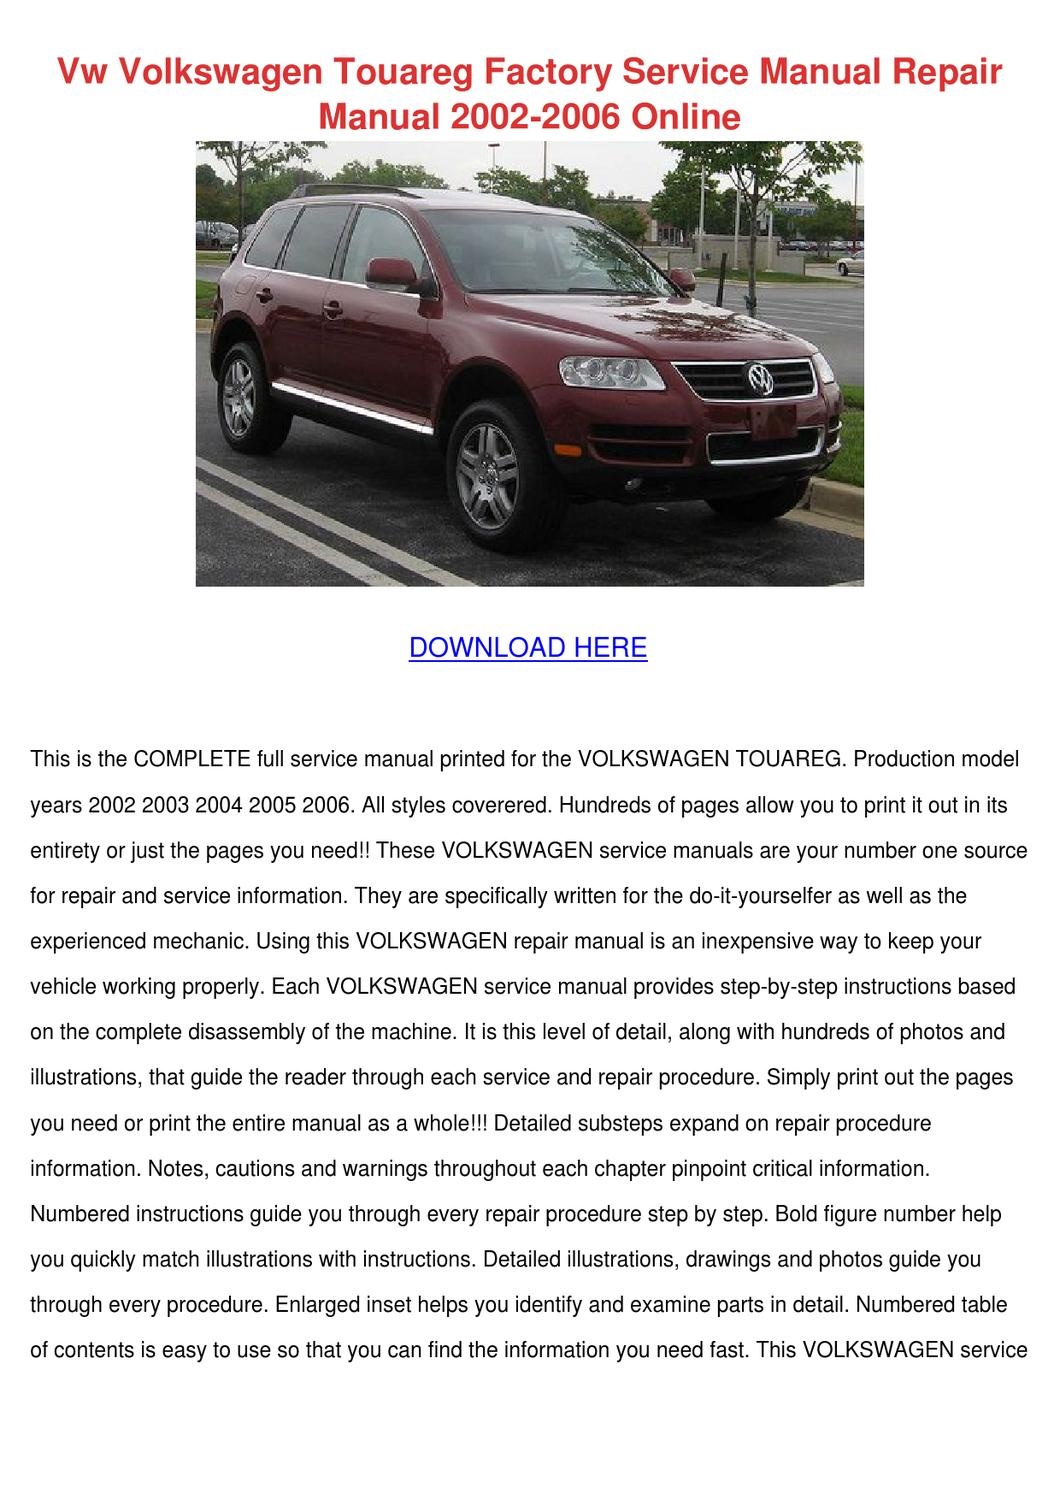 Vw Volkswagen Touareg Factory Service Manual by Yung Shellenbarger - issuu